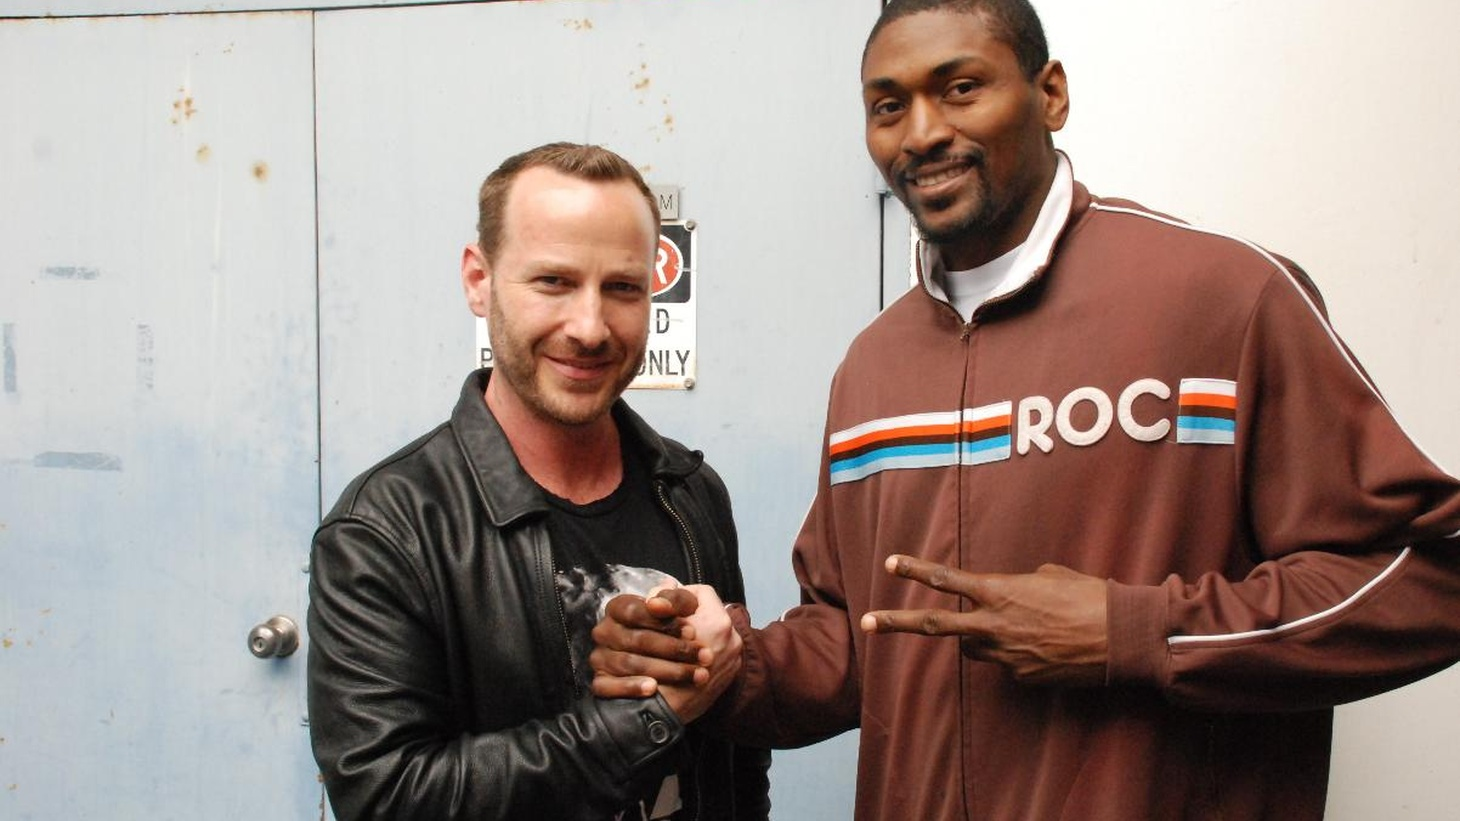 Lakers forward Ron Artest shares his surprising pre-game soundtrack – soulful songs about love – and more in his Guest DJ set. He tells us how music united his family and how Mobb Deep inspired him to make it in basketball to avoid life in the streets. See a softer side of the pro athlete.